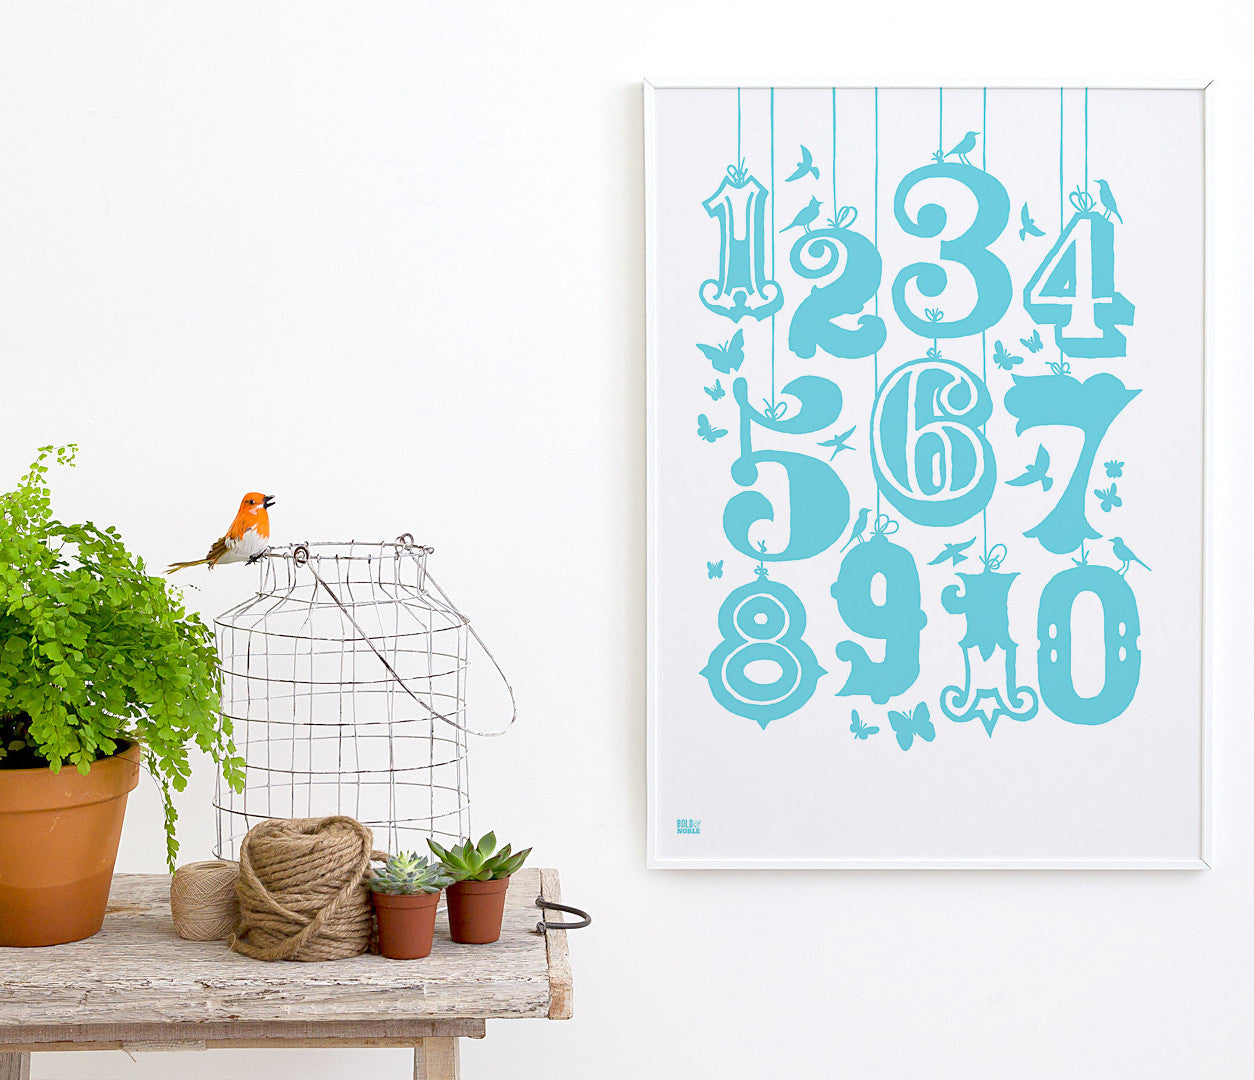 Pictures and wall art, screen printed 1-10 Kids poster in azure blue